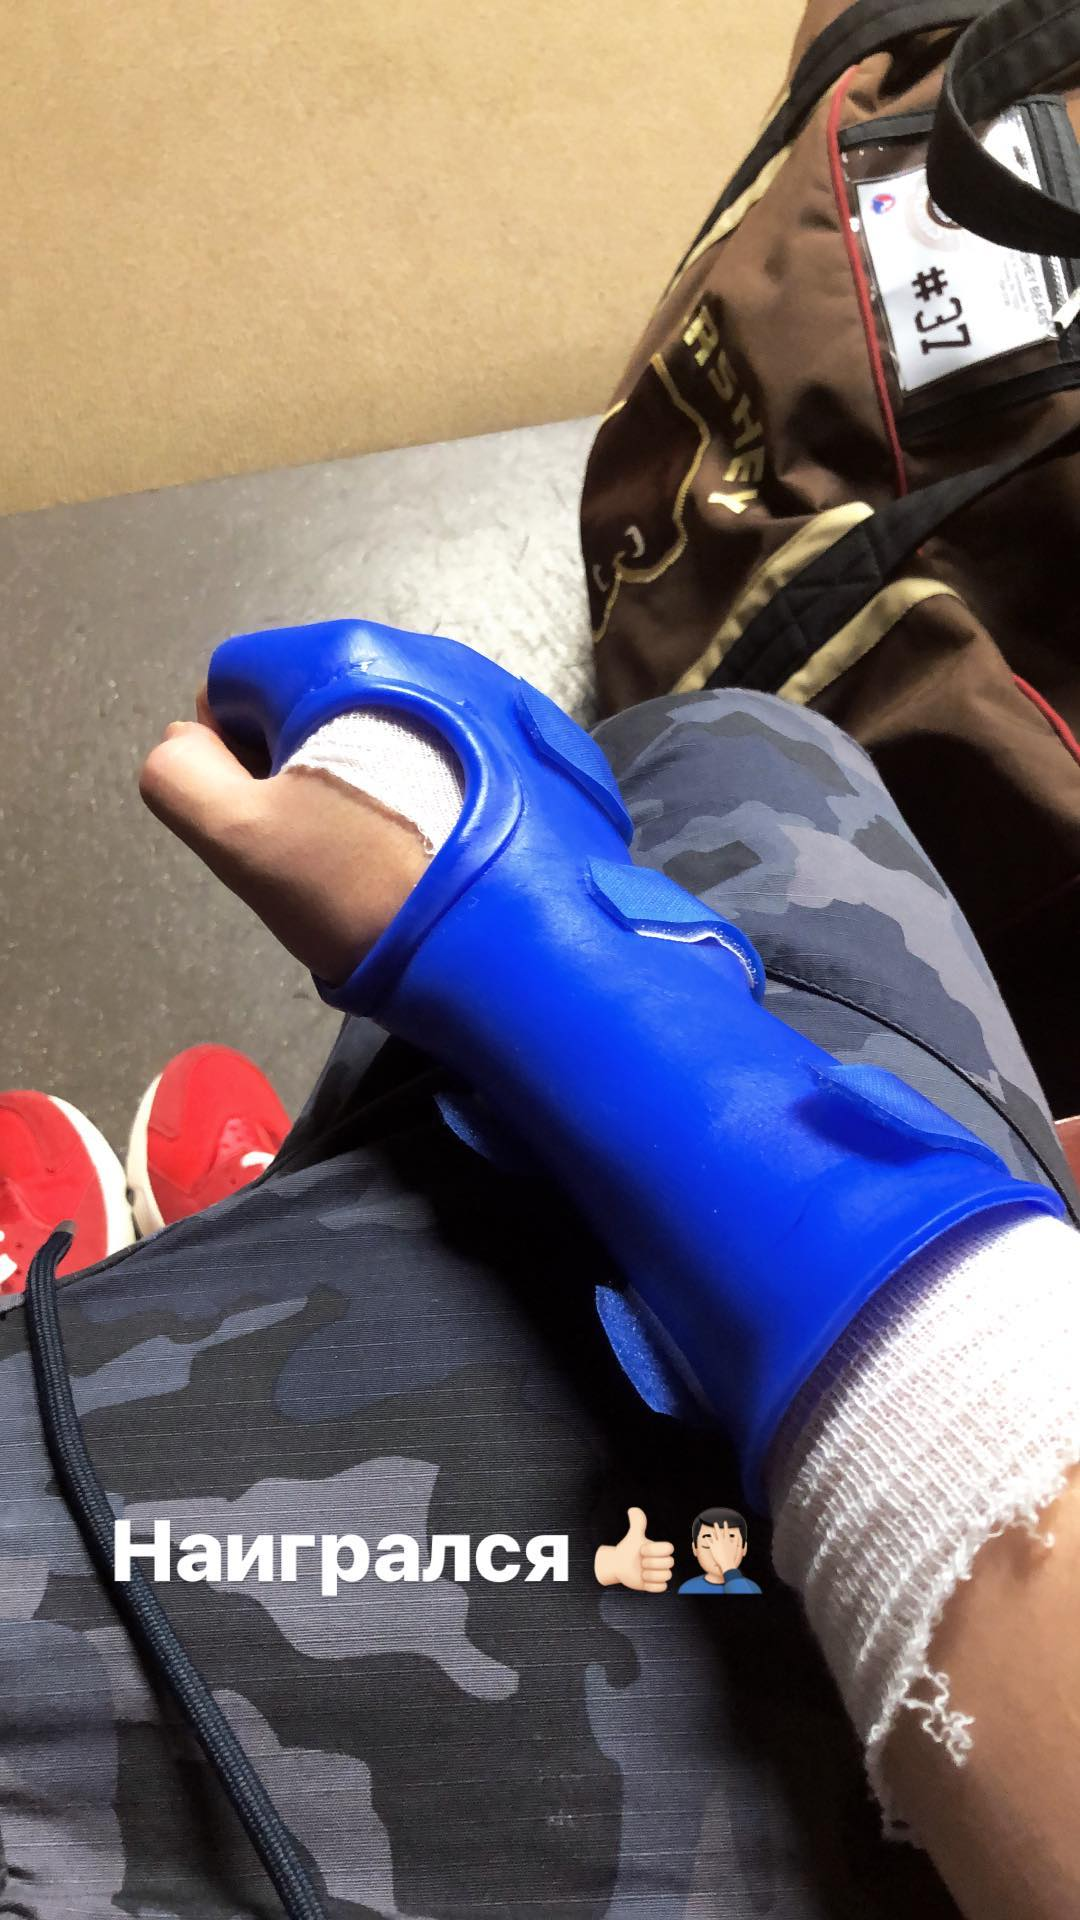 Sergei Shumakov has an injured right hand, posts photo in cast to